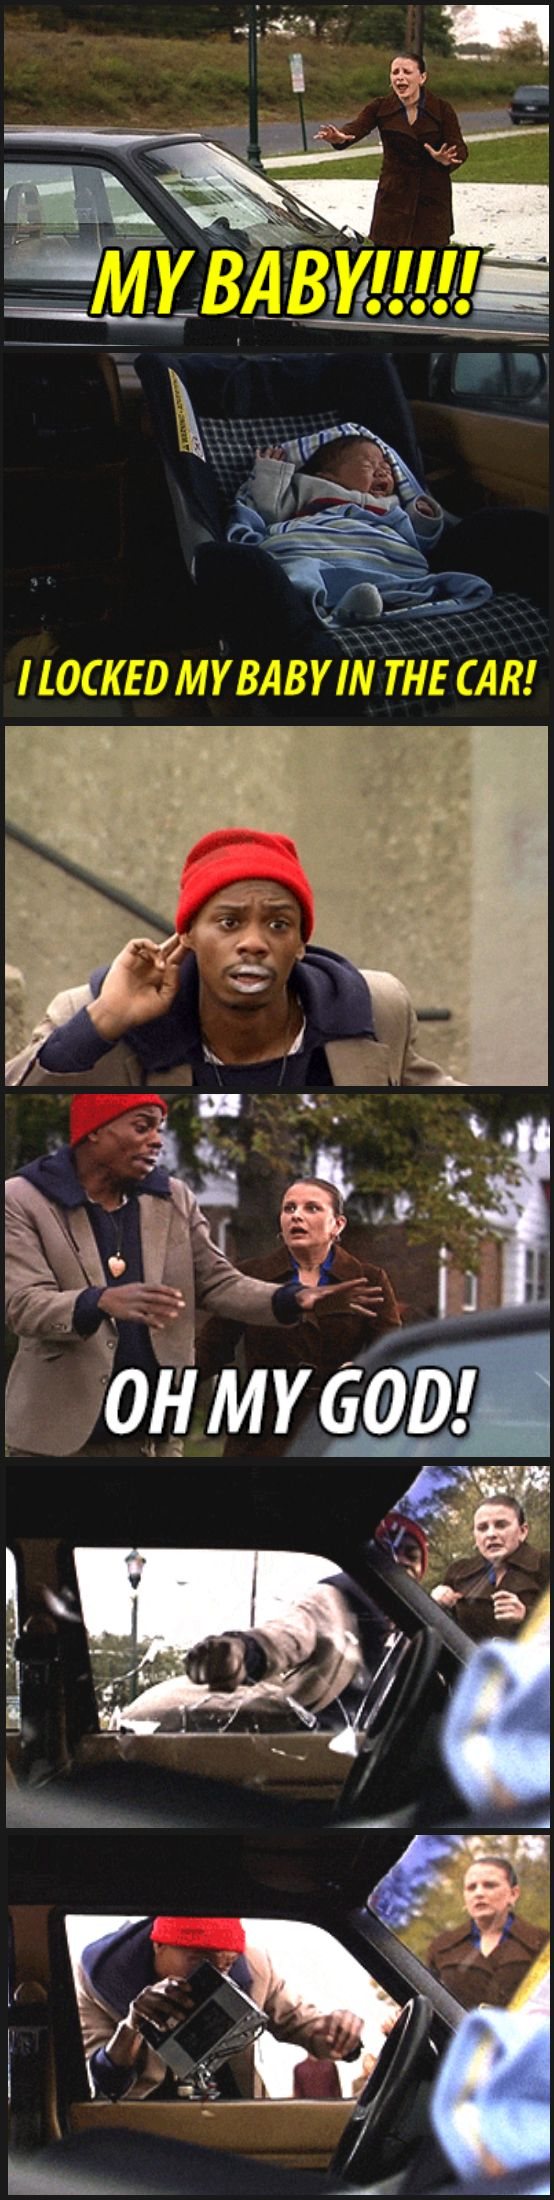 While we're on the subject of locking babies in the car, Dave Chappelle did it best.